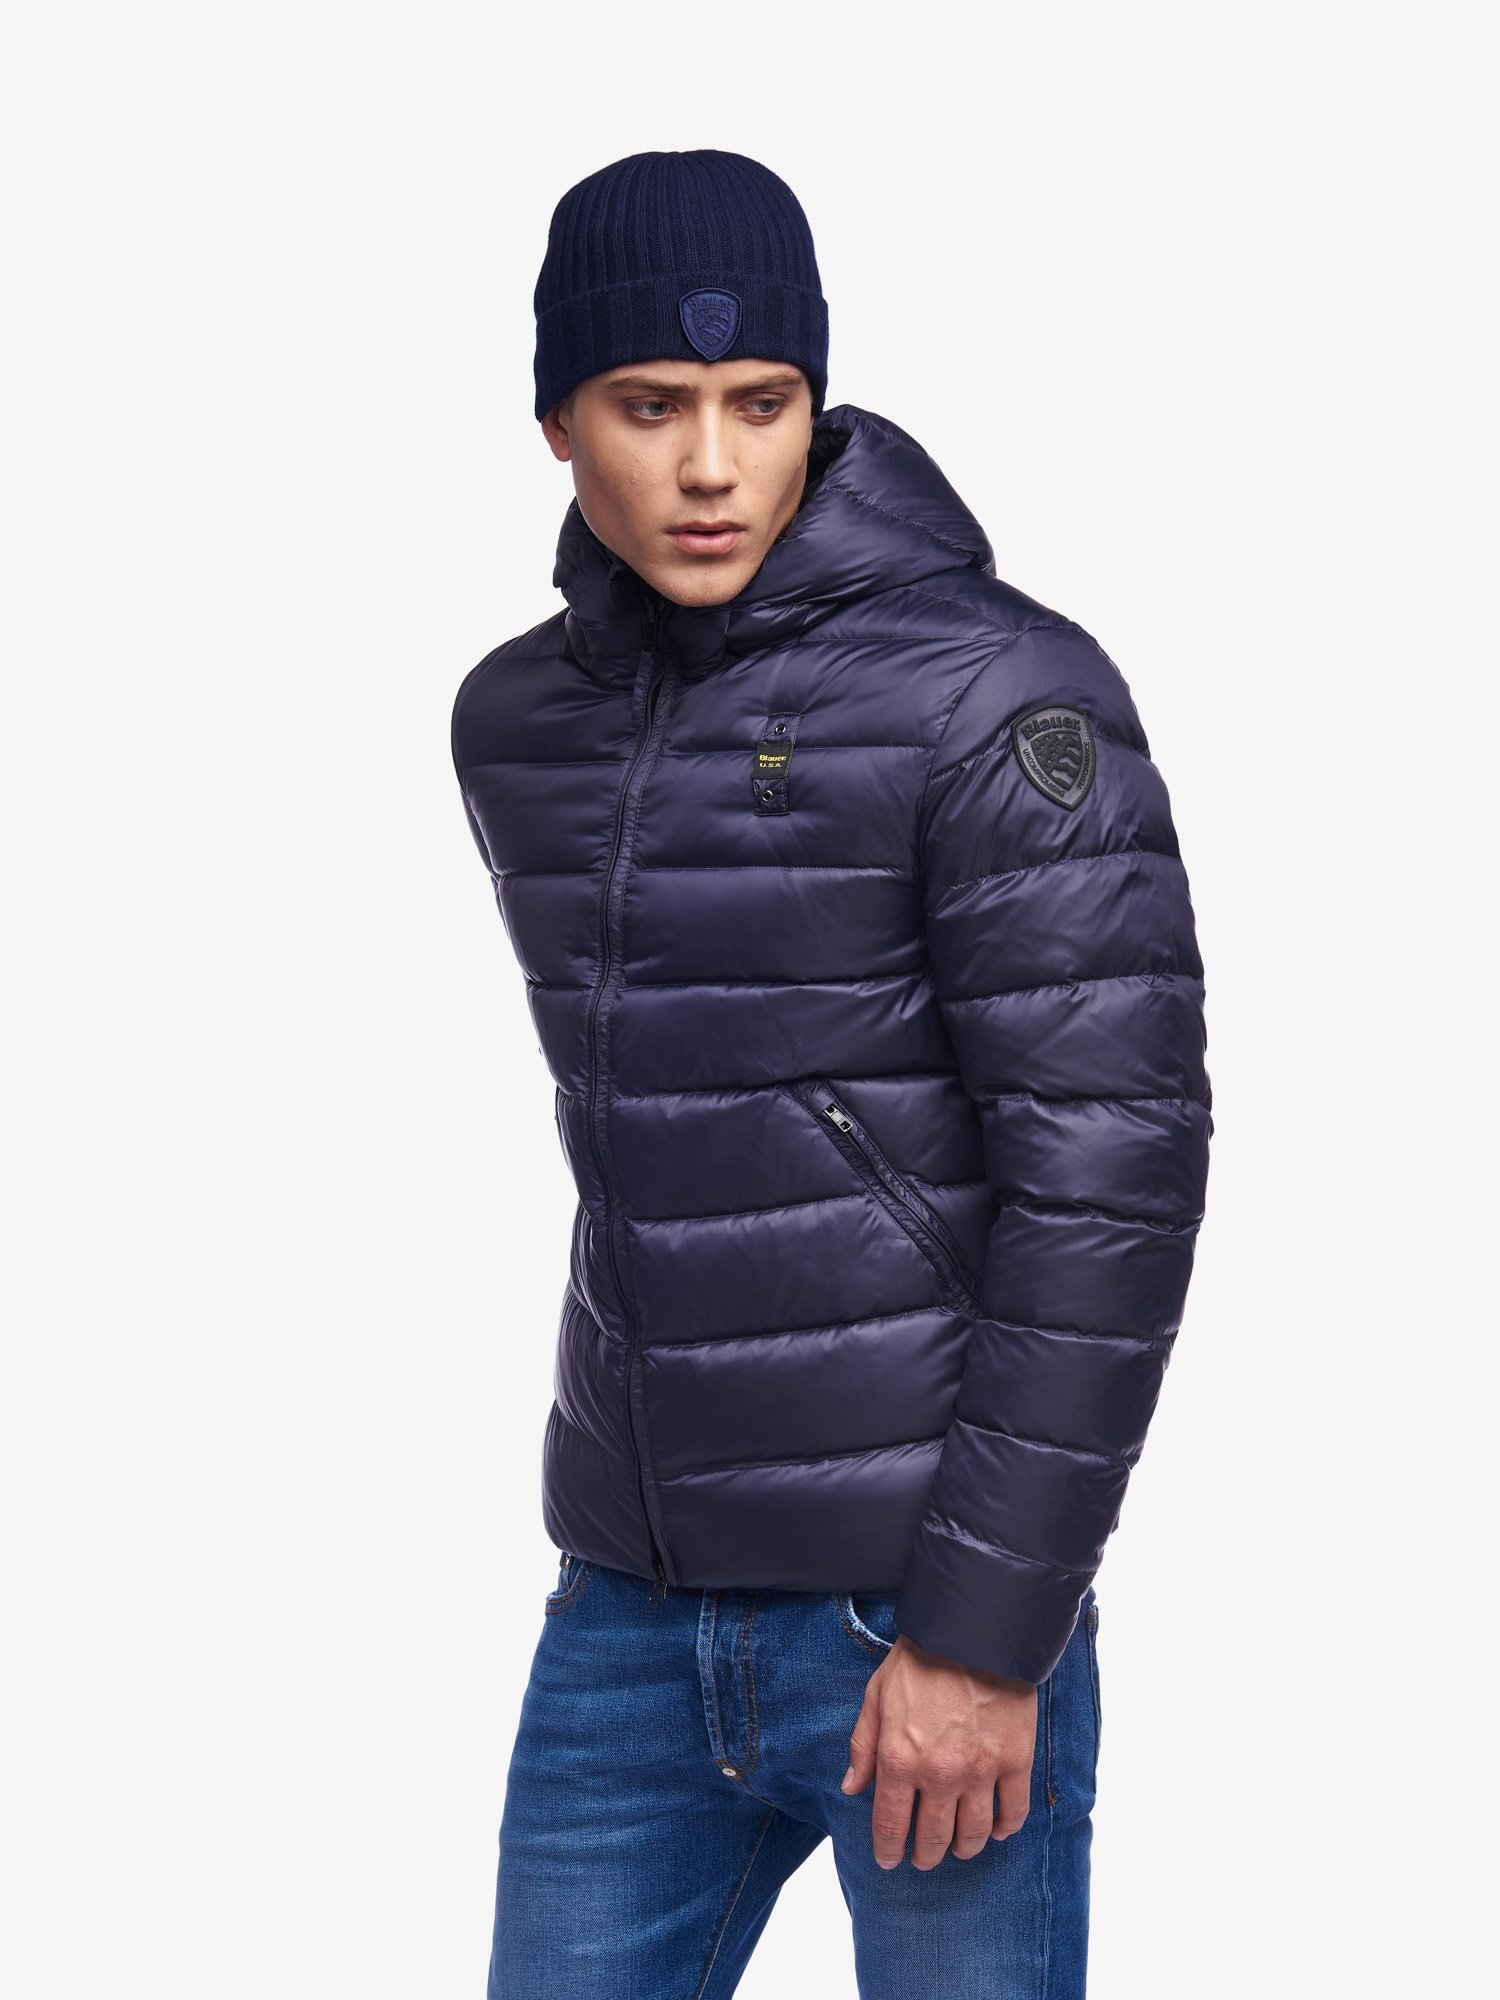 MILLS DOWN JACKET WITH ATTACHED HOOD - Blauer